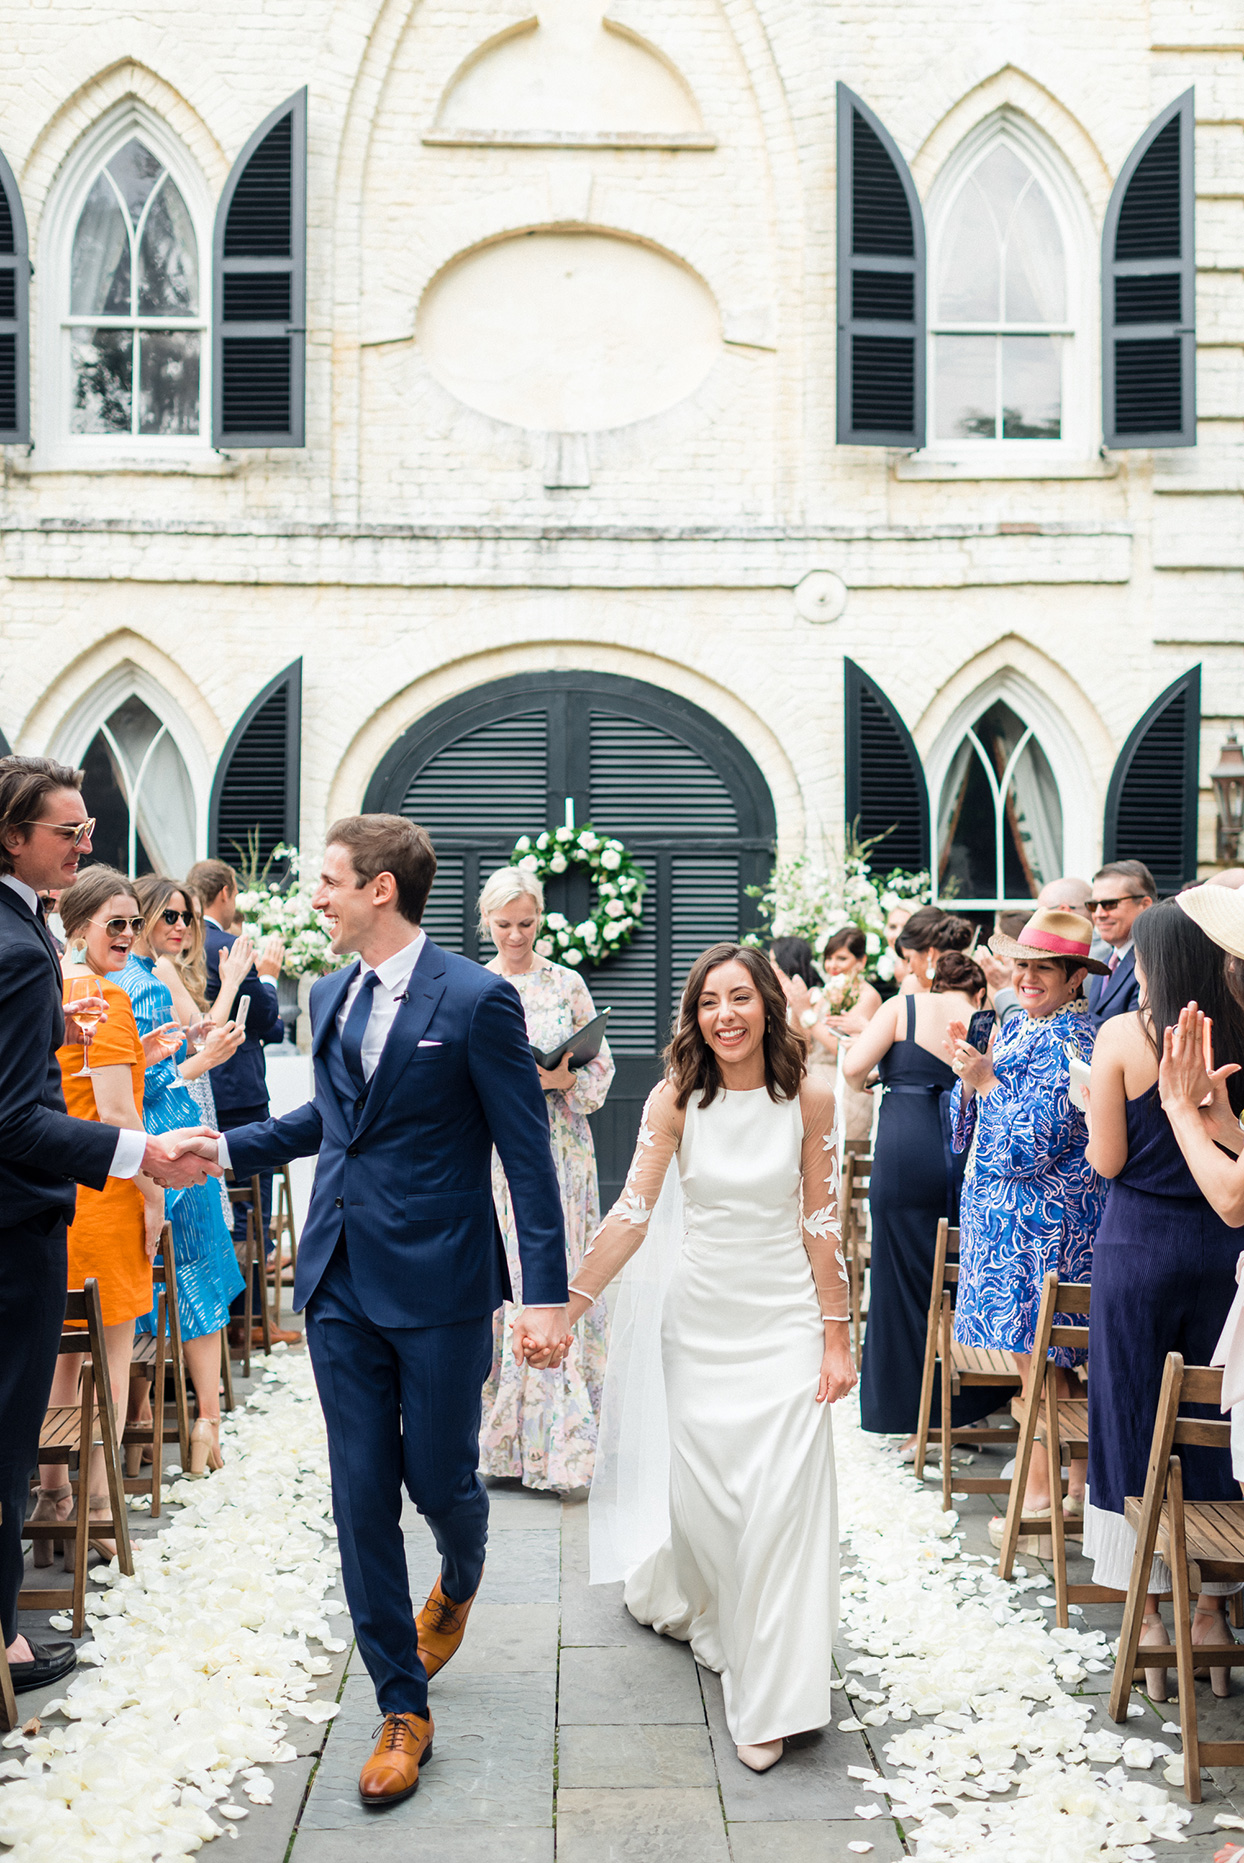 paula terence wedding ceremony bride and groom's recessional